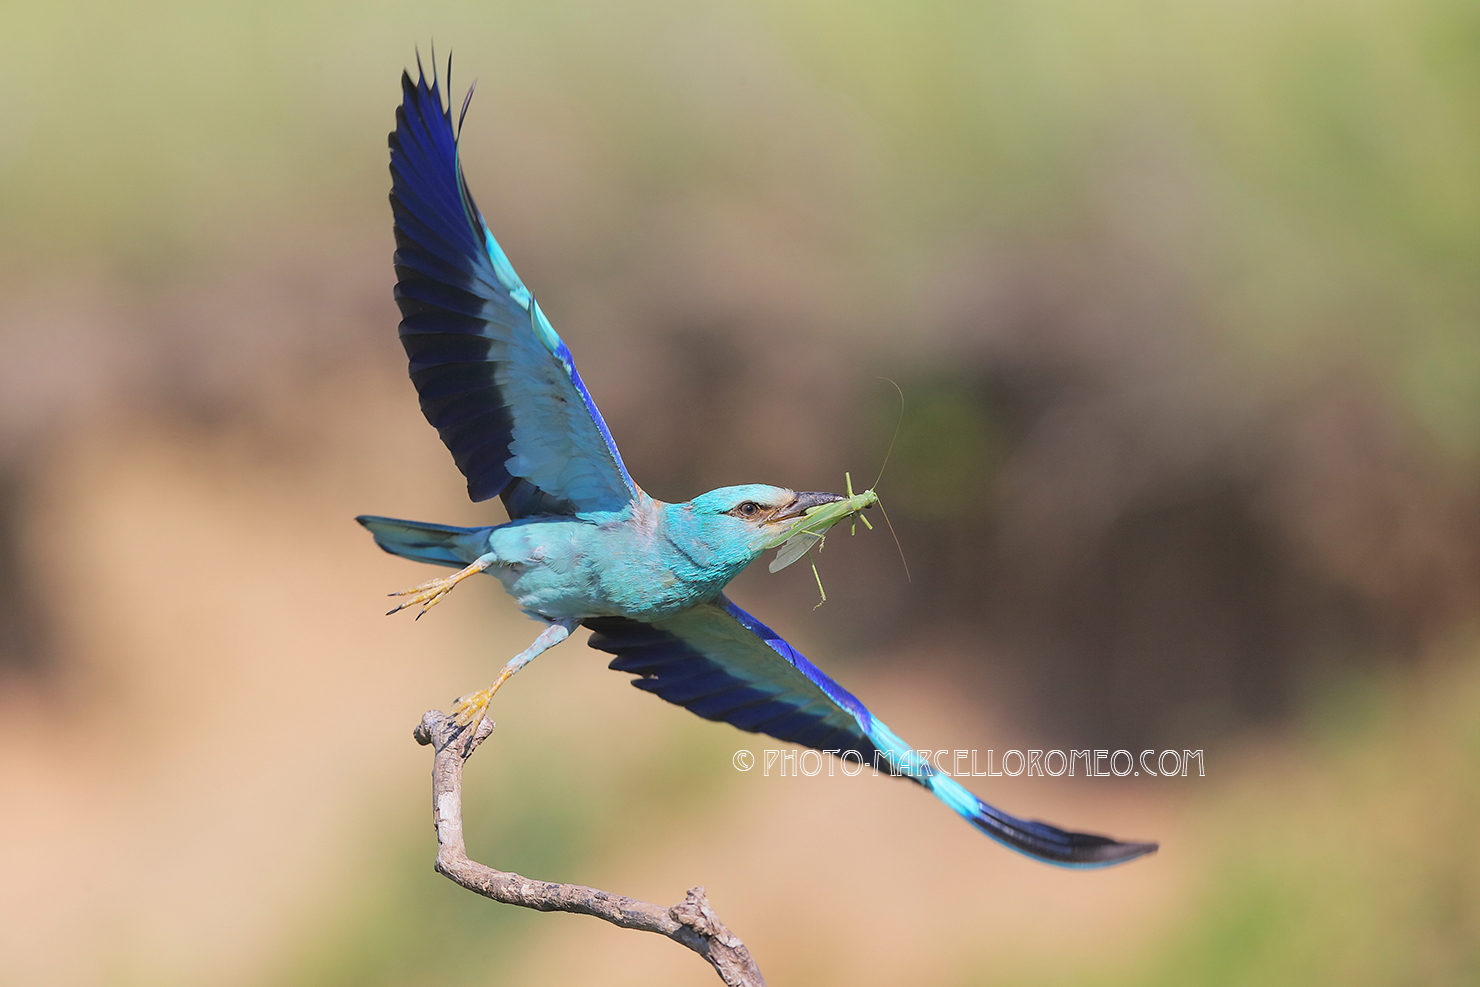 European Roller flies off a branch to bring food to the nest